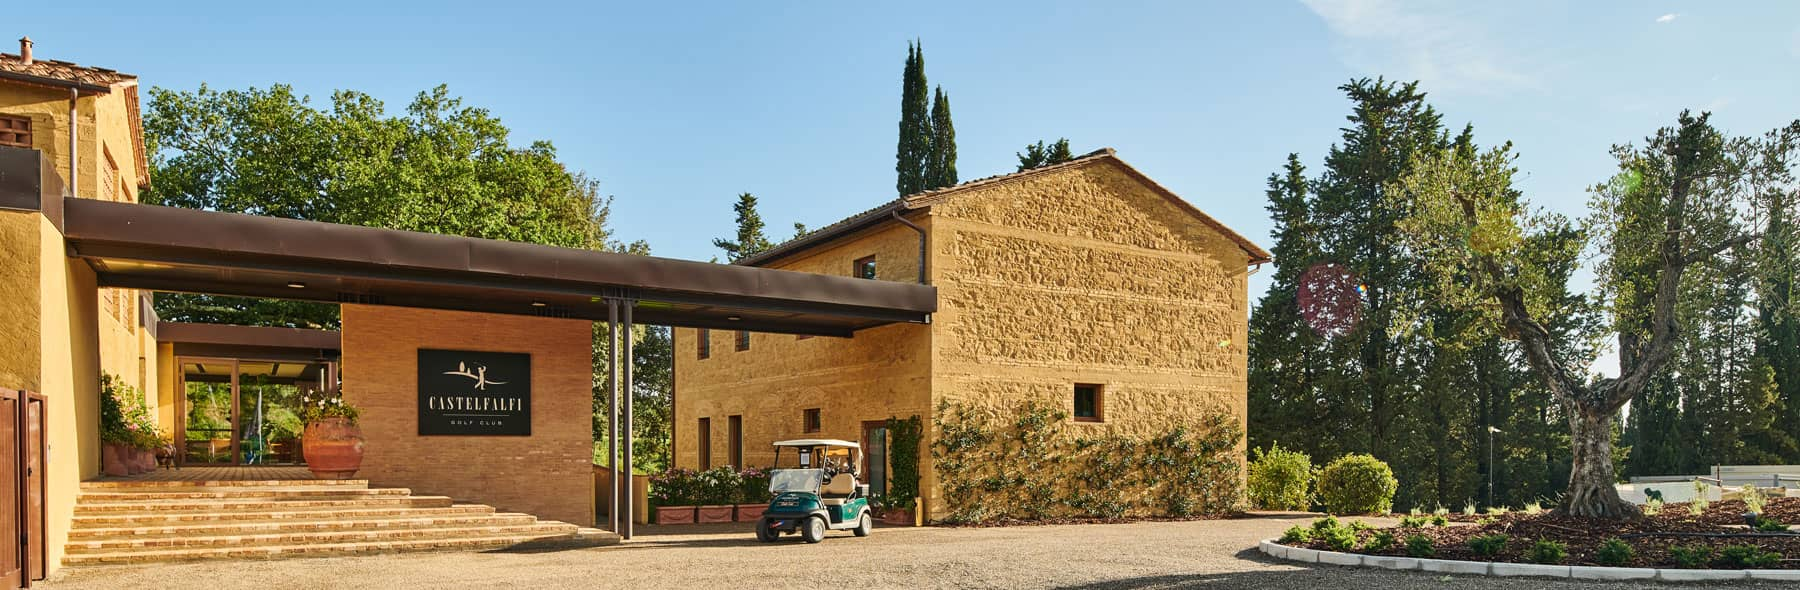 Exterior view of the new Club House, restaurant and pro shop at Golf Club Castelfalfi, Tuscany, Italy